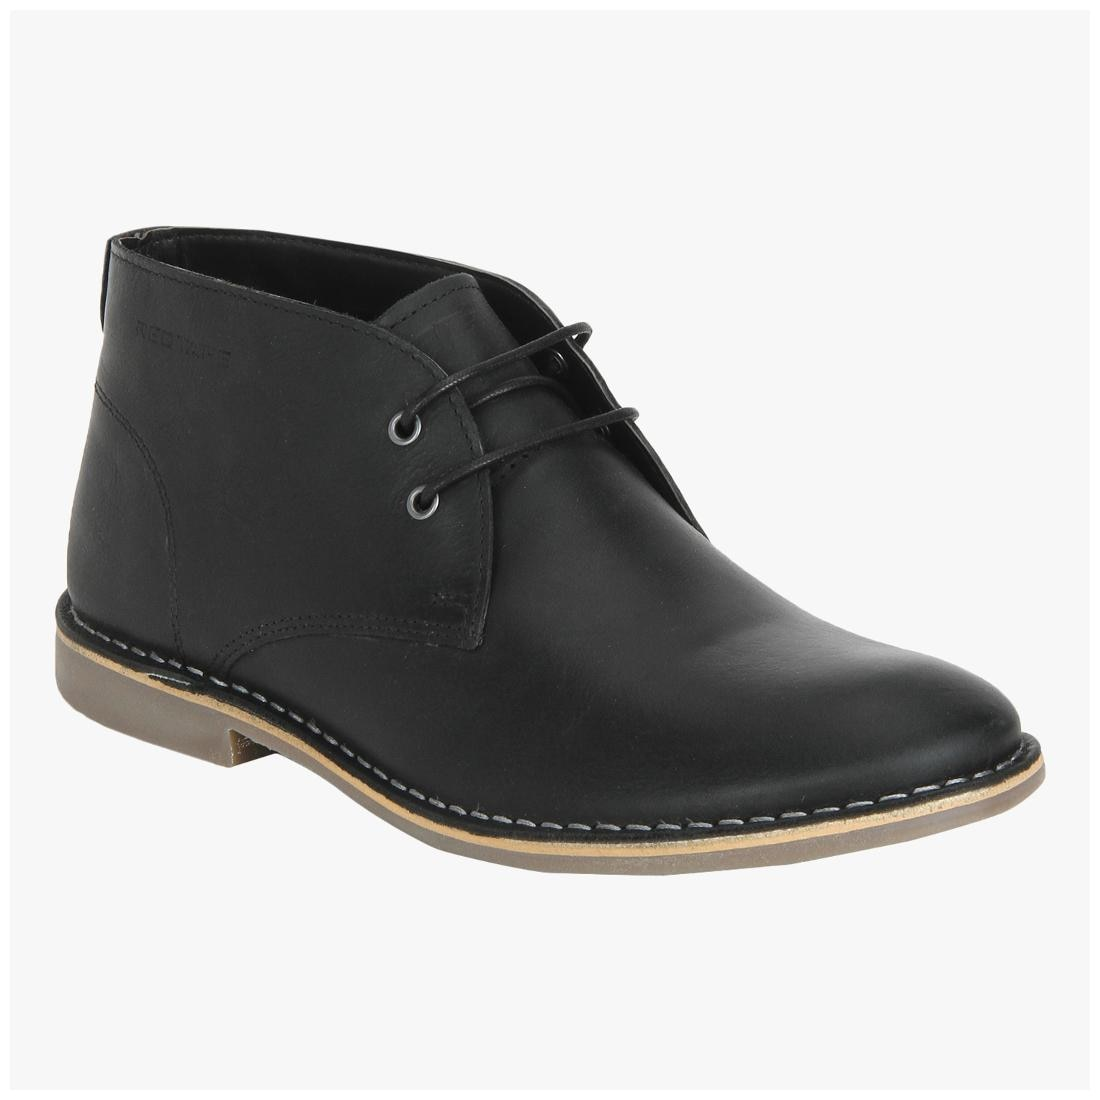 red tape black boots for men online in india at best price